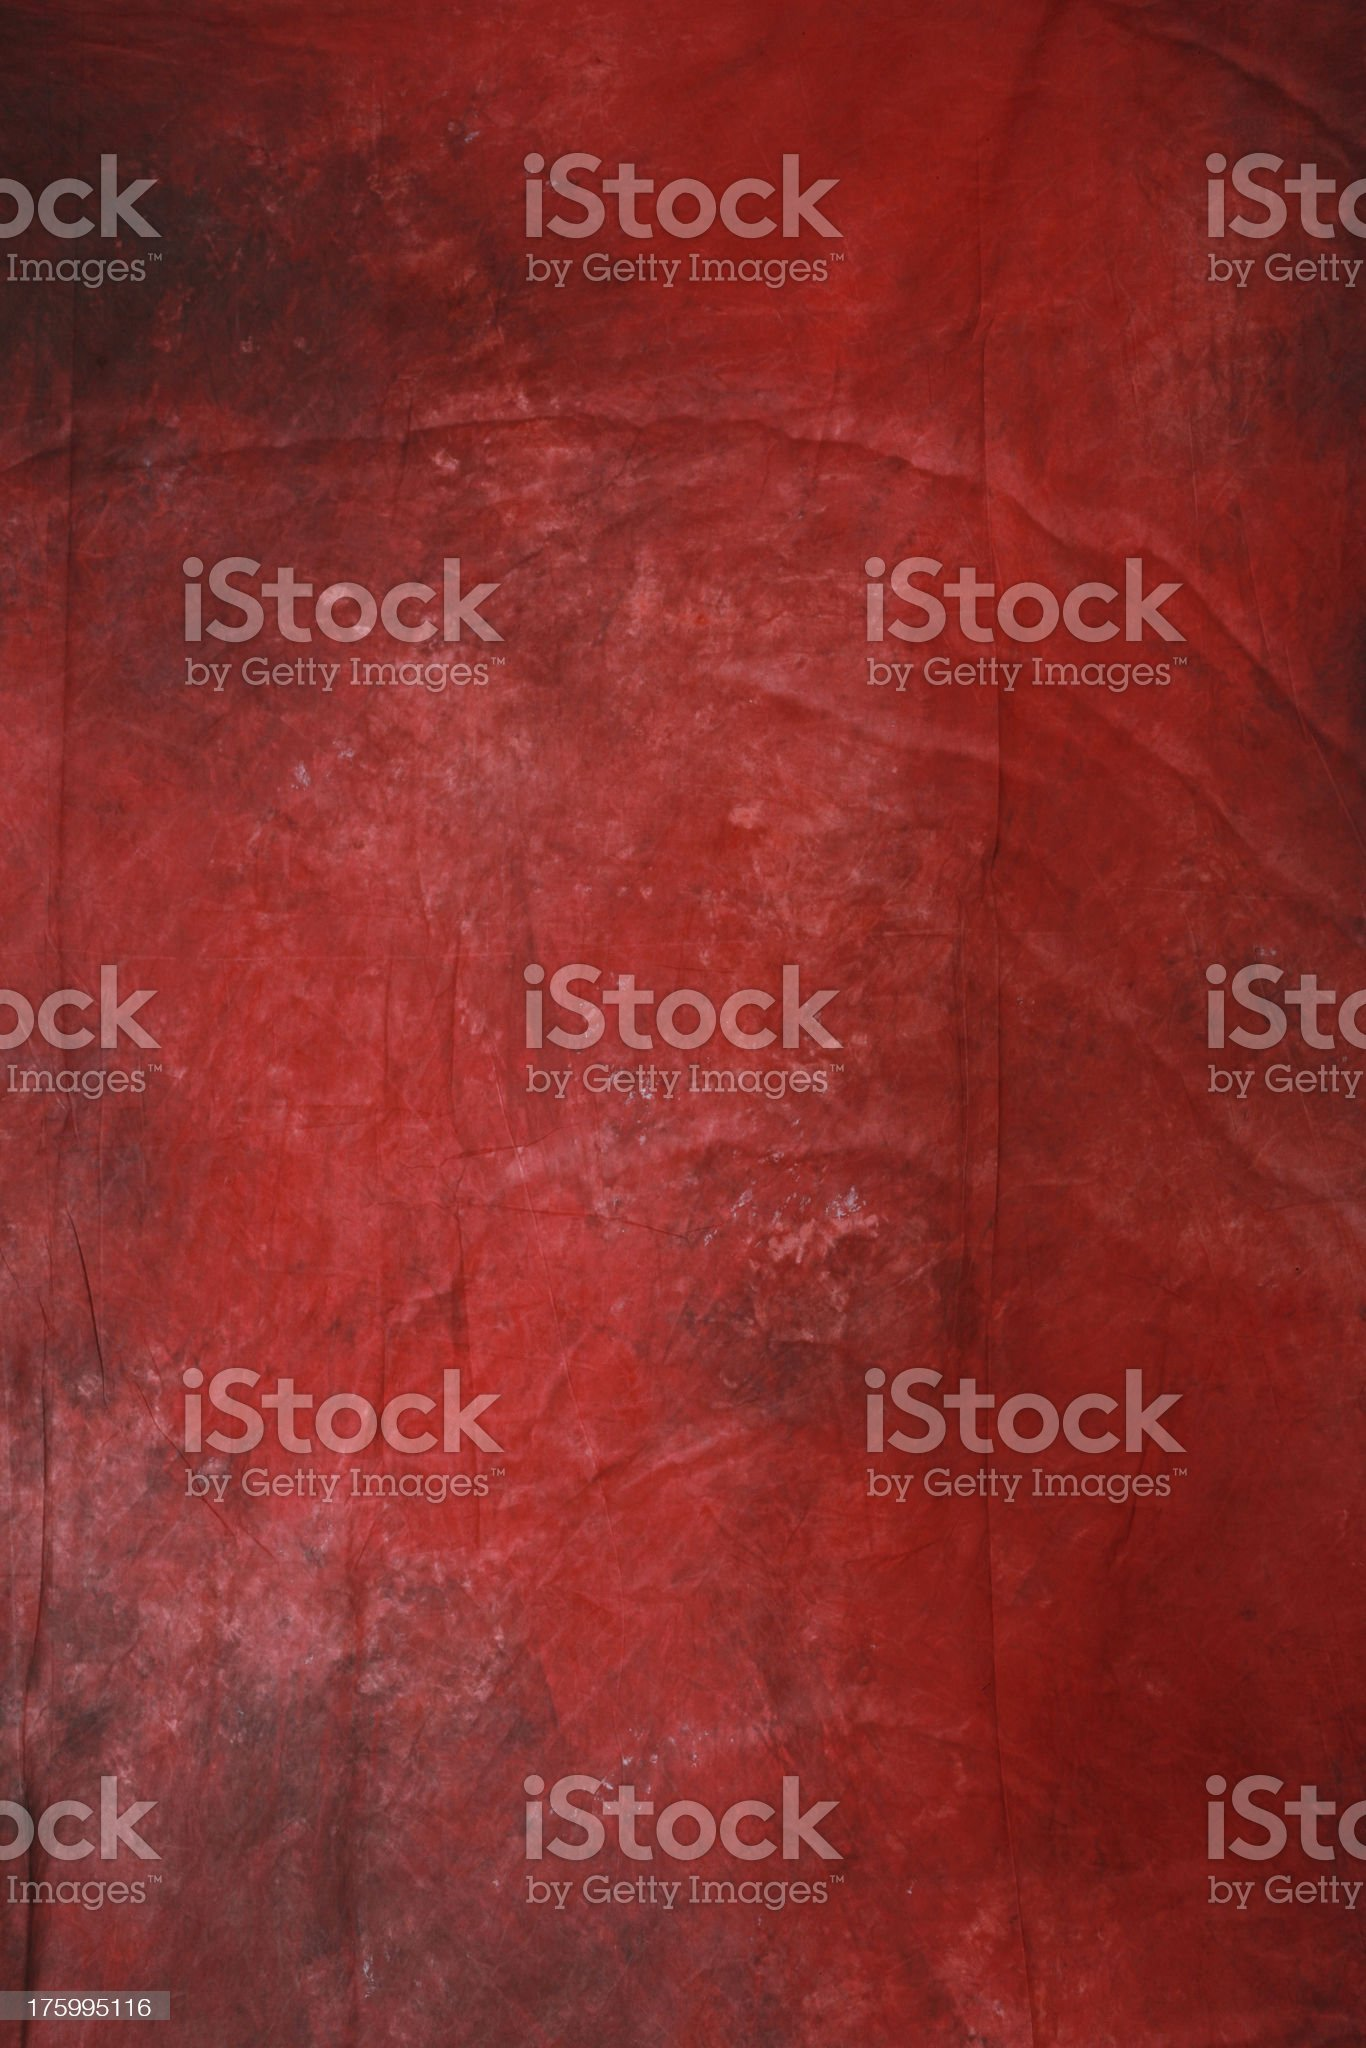 Red Mottled Background royalty-free stock photo